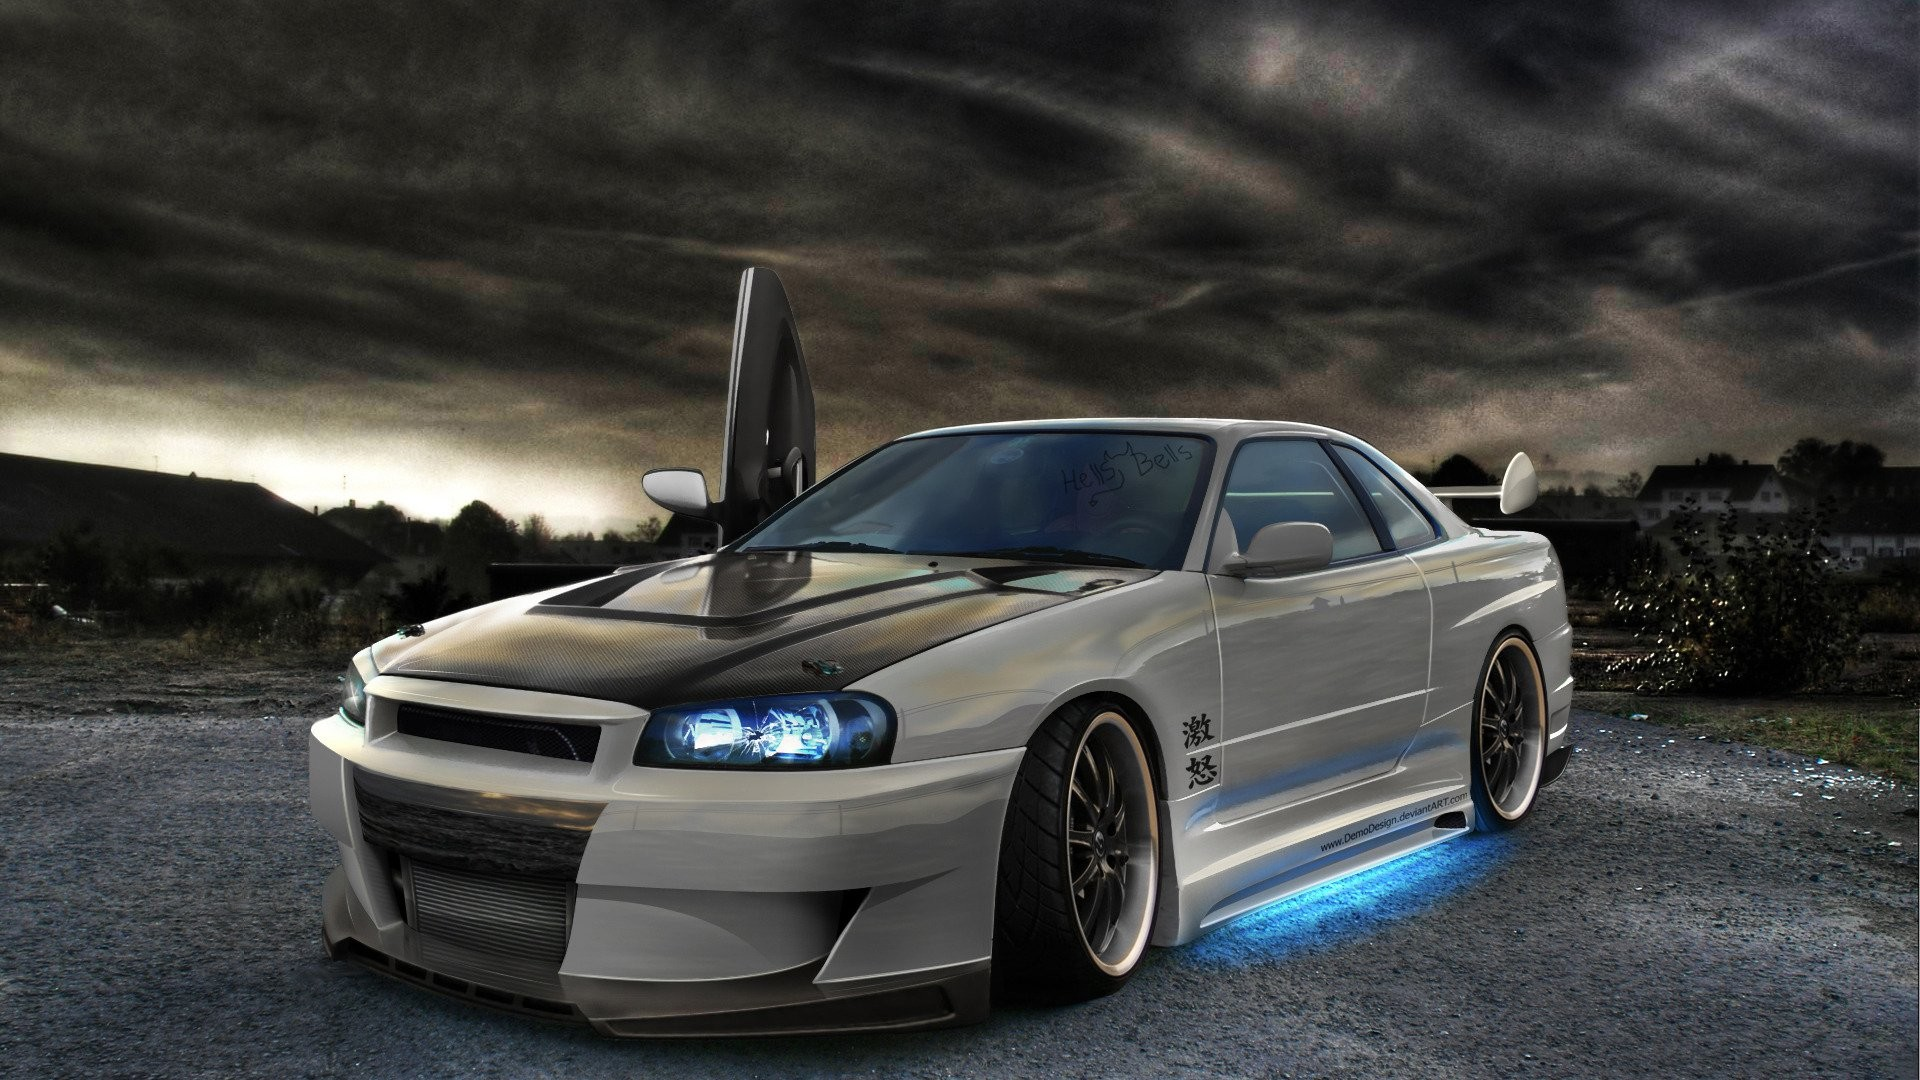 Res: 1920x1080, Nissan Skyline GT-R Wallpapers 10 - 1920 X 1080